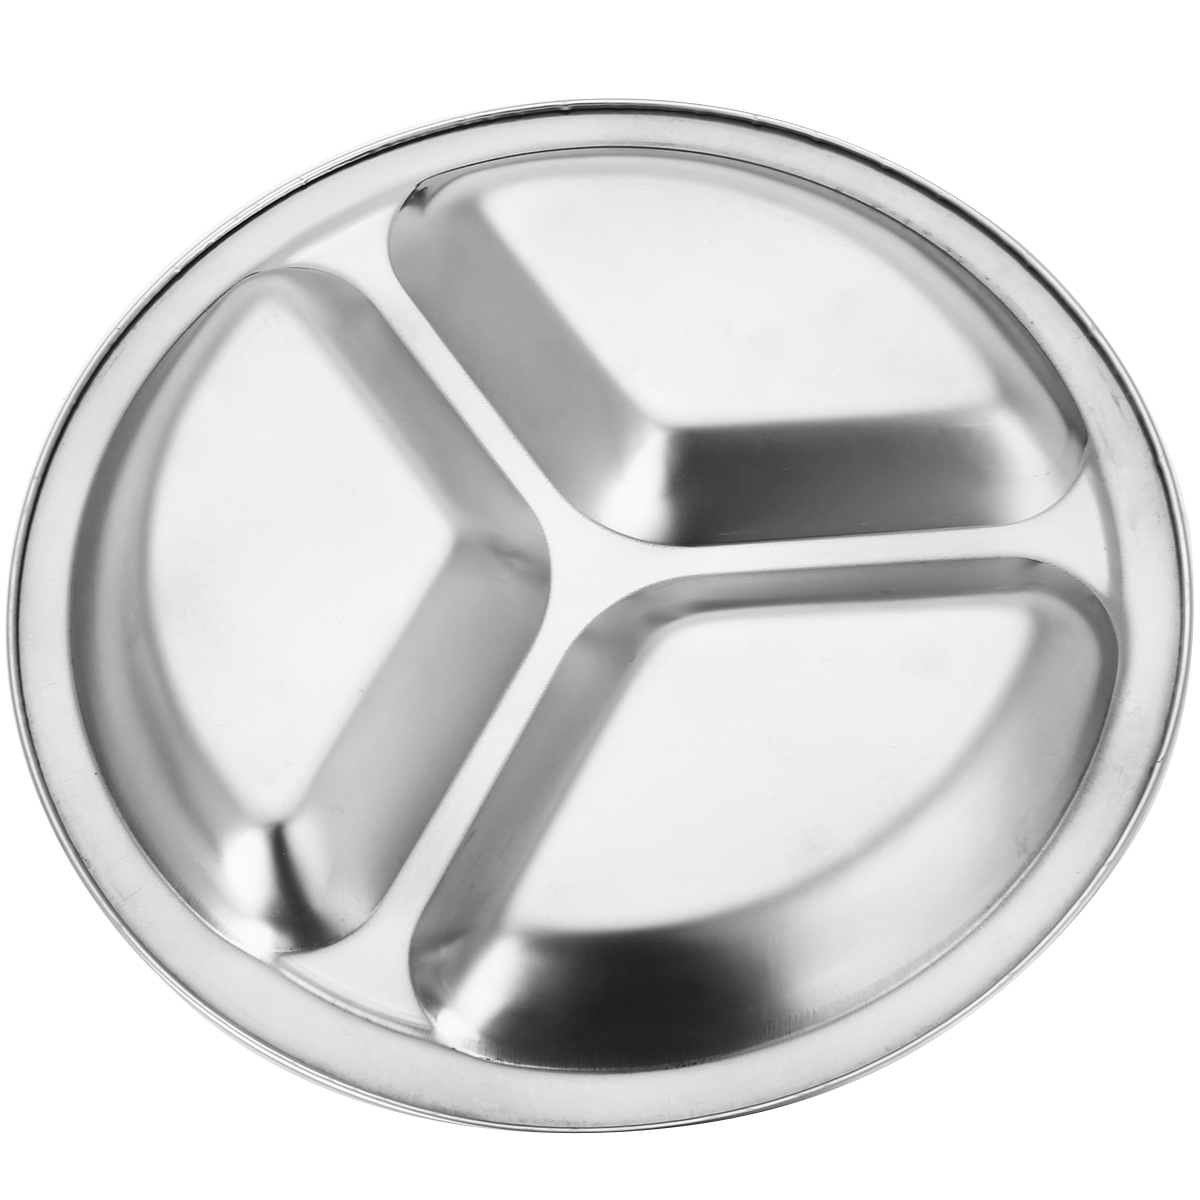 22//24//26cm Silver Stainless Steel 3 Sections Round Divid Dish Snack Dinner Plate